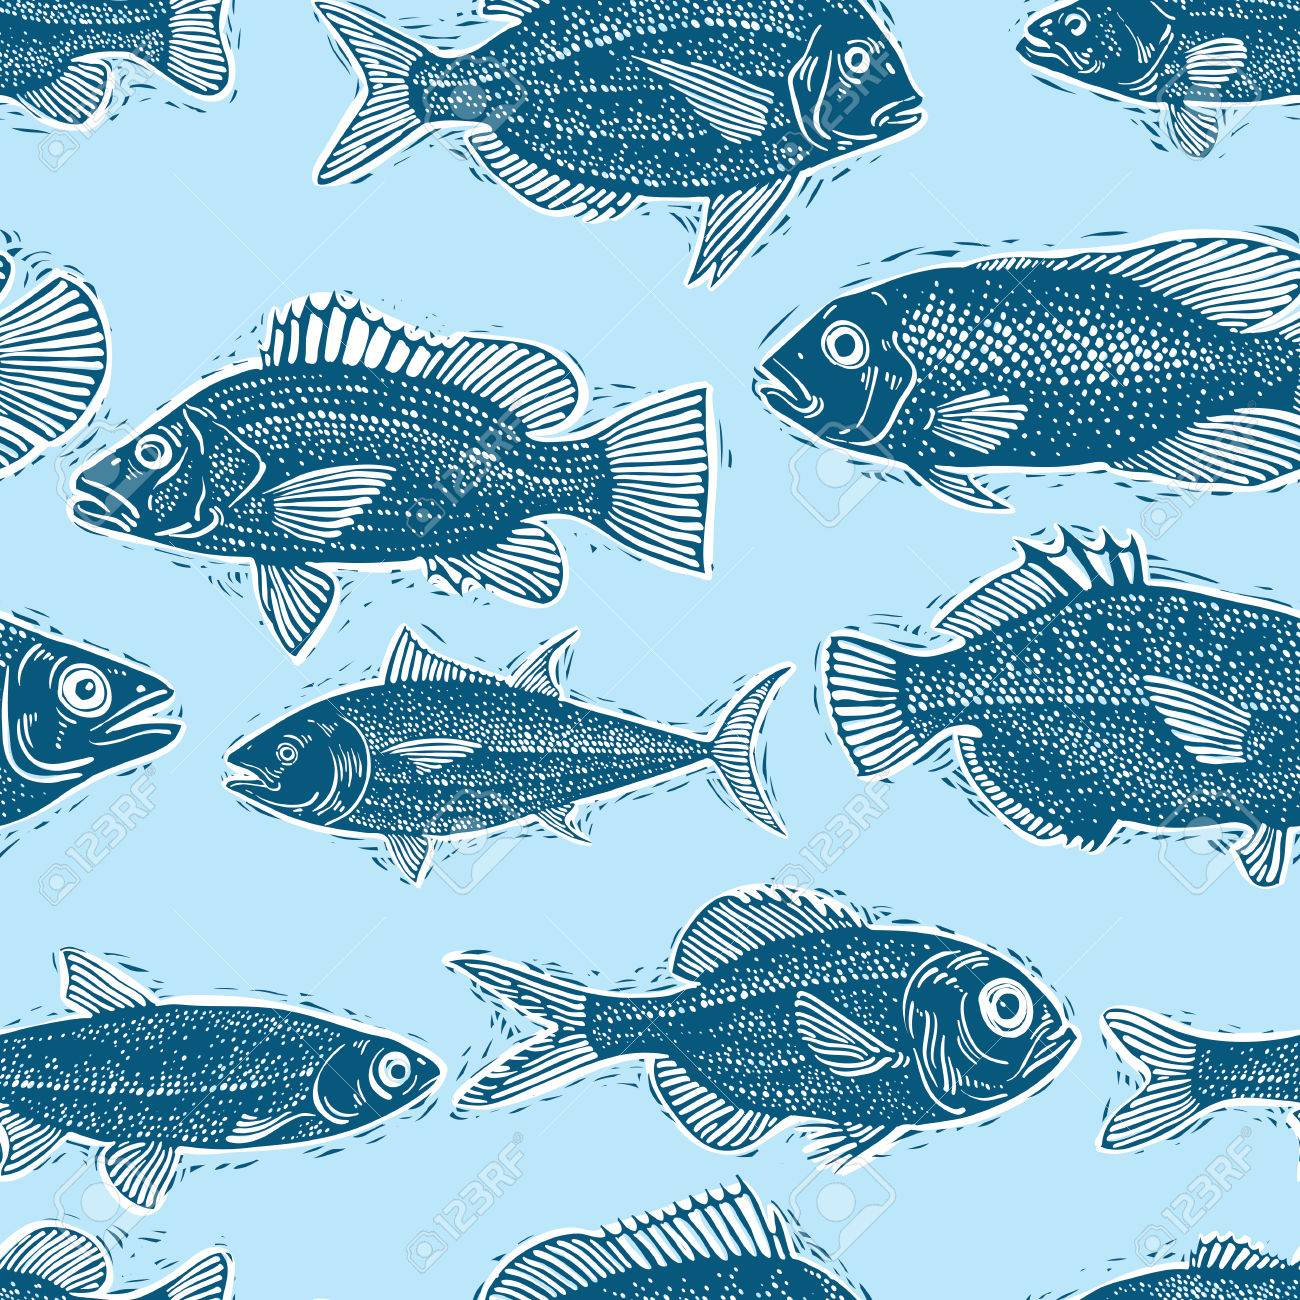 Freshwater Fish Endless Pattern Vector Nature And Marine Theme 1300x1300